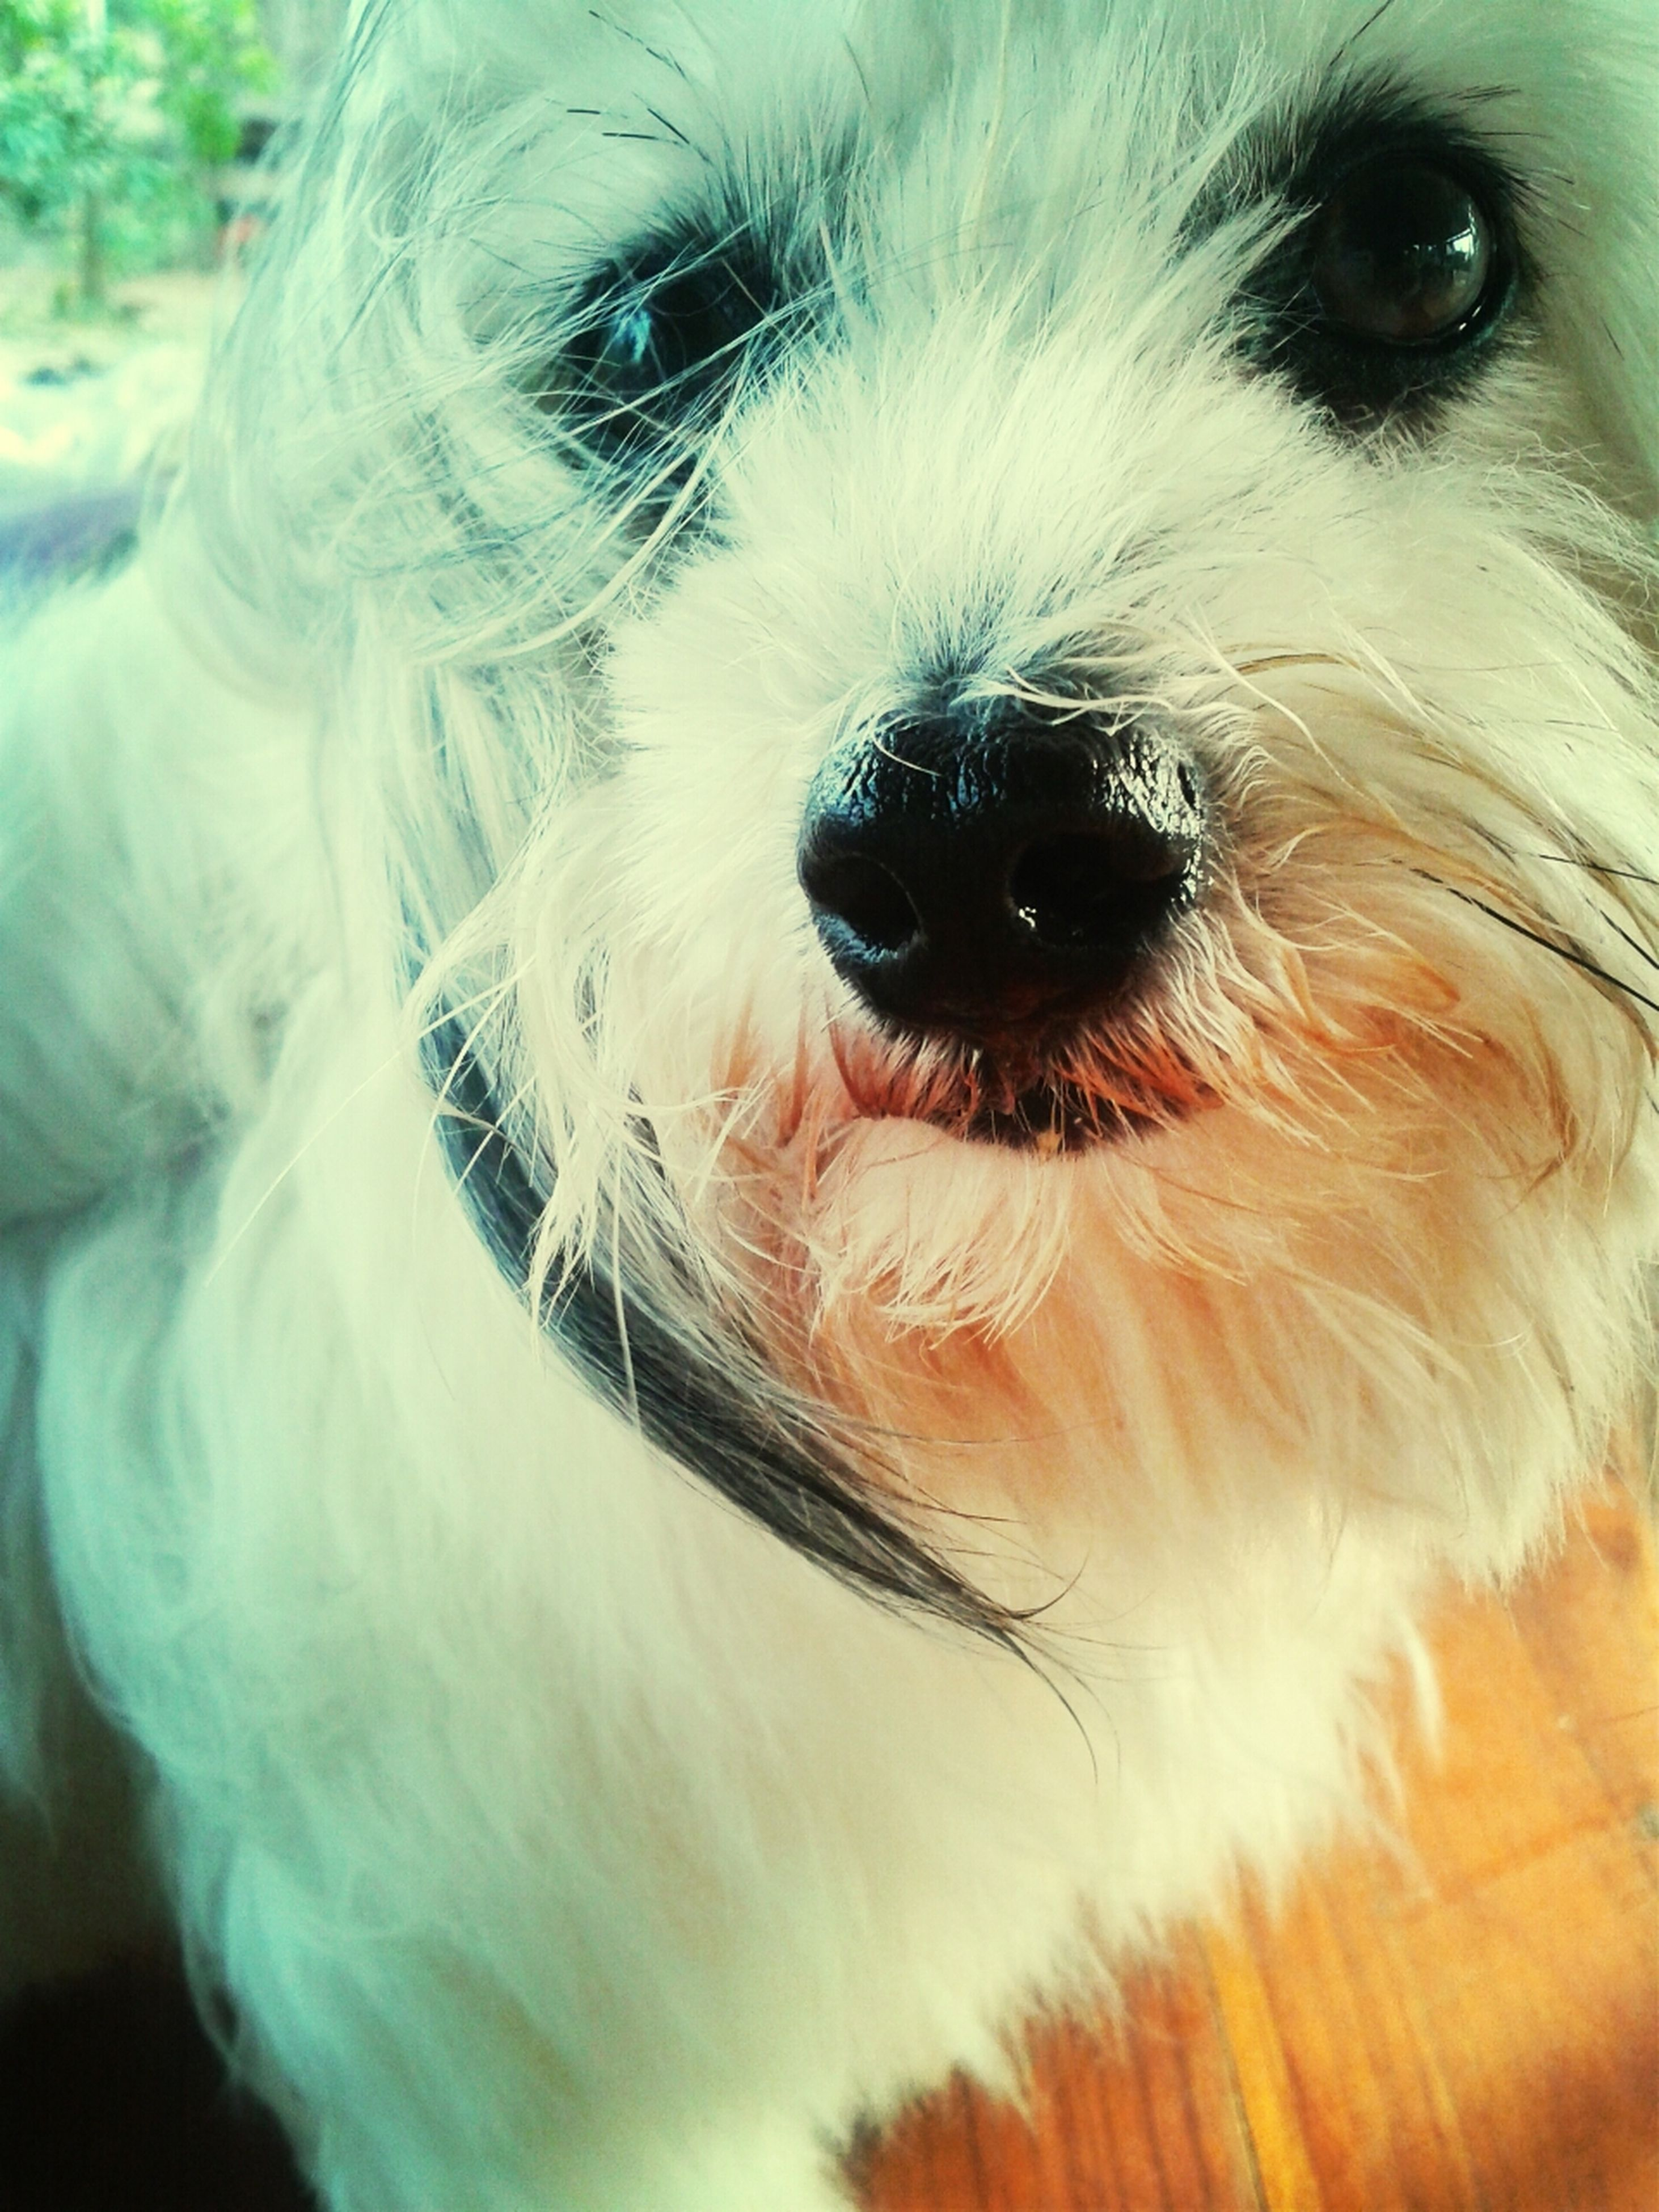 one animal, pets, dog, domestic animals, animal themes, mammal, close-up, animal head, animal body part, animal nose, snout, part of, animal hair, portrait, indoors, animal eye, looking at camera, focus on foreground, pampered pets